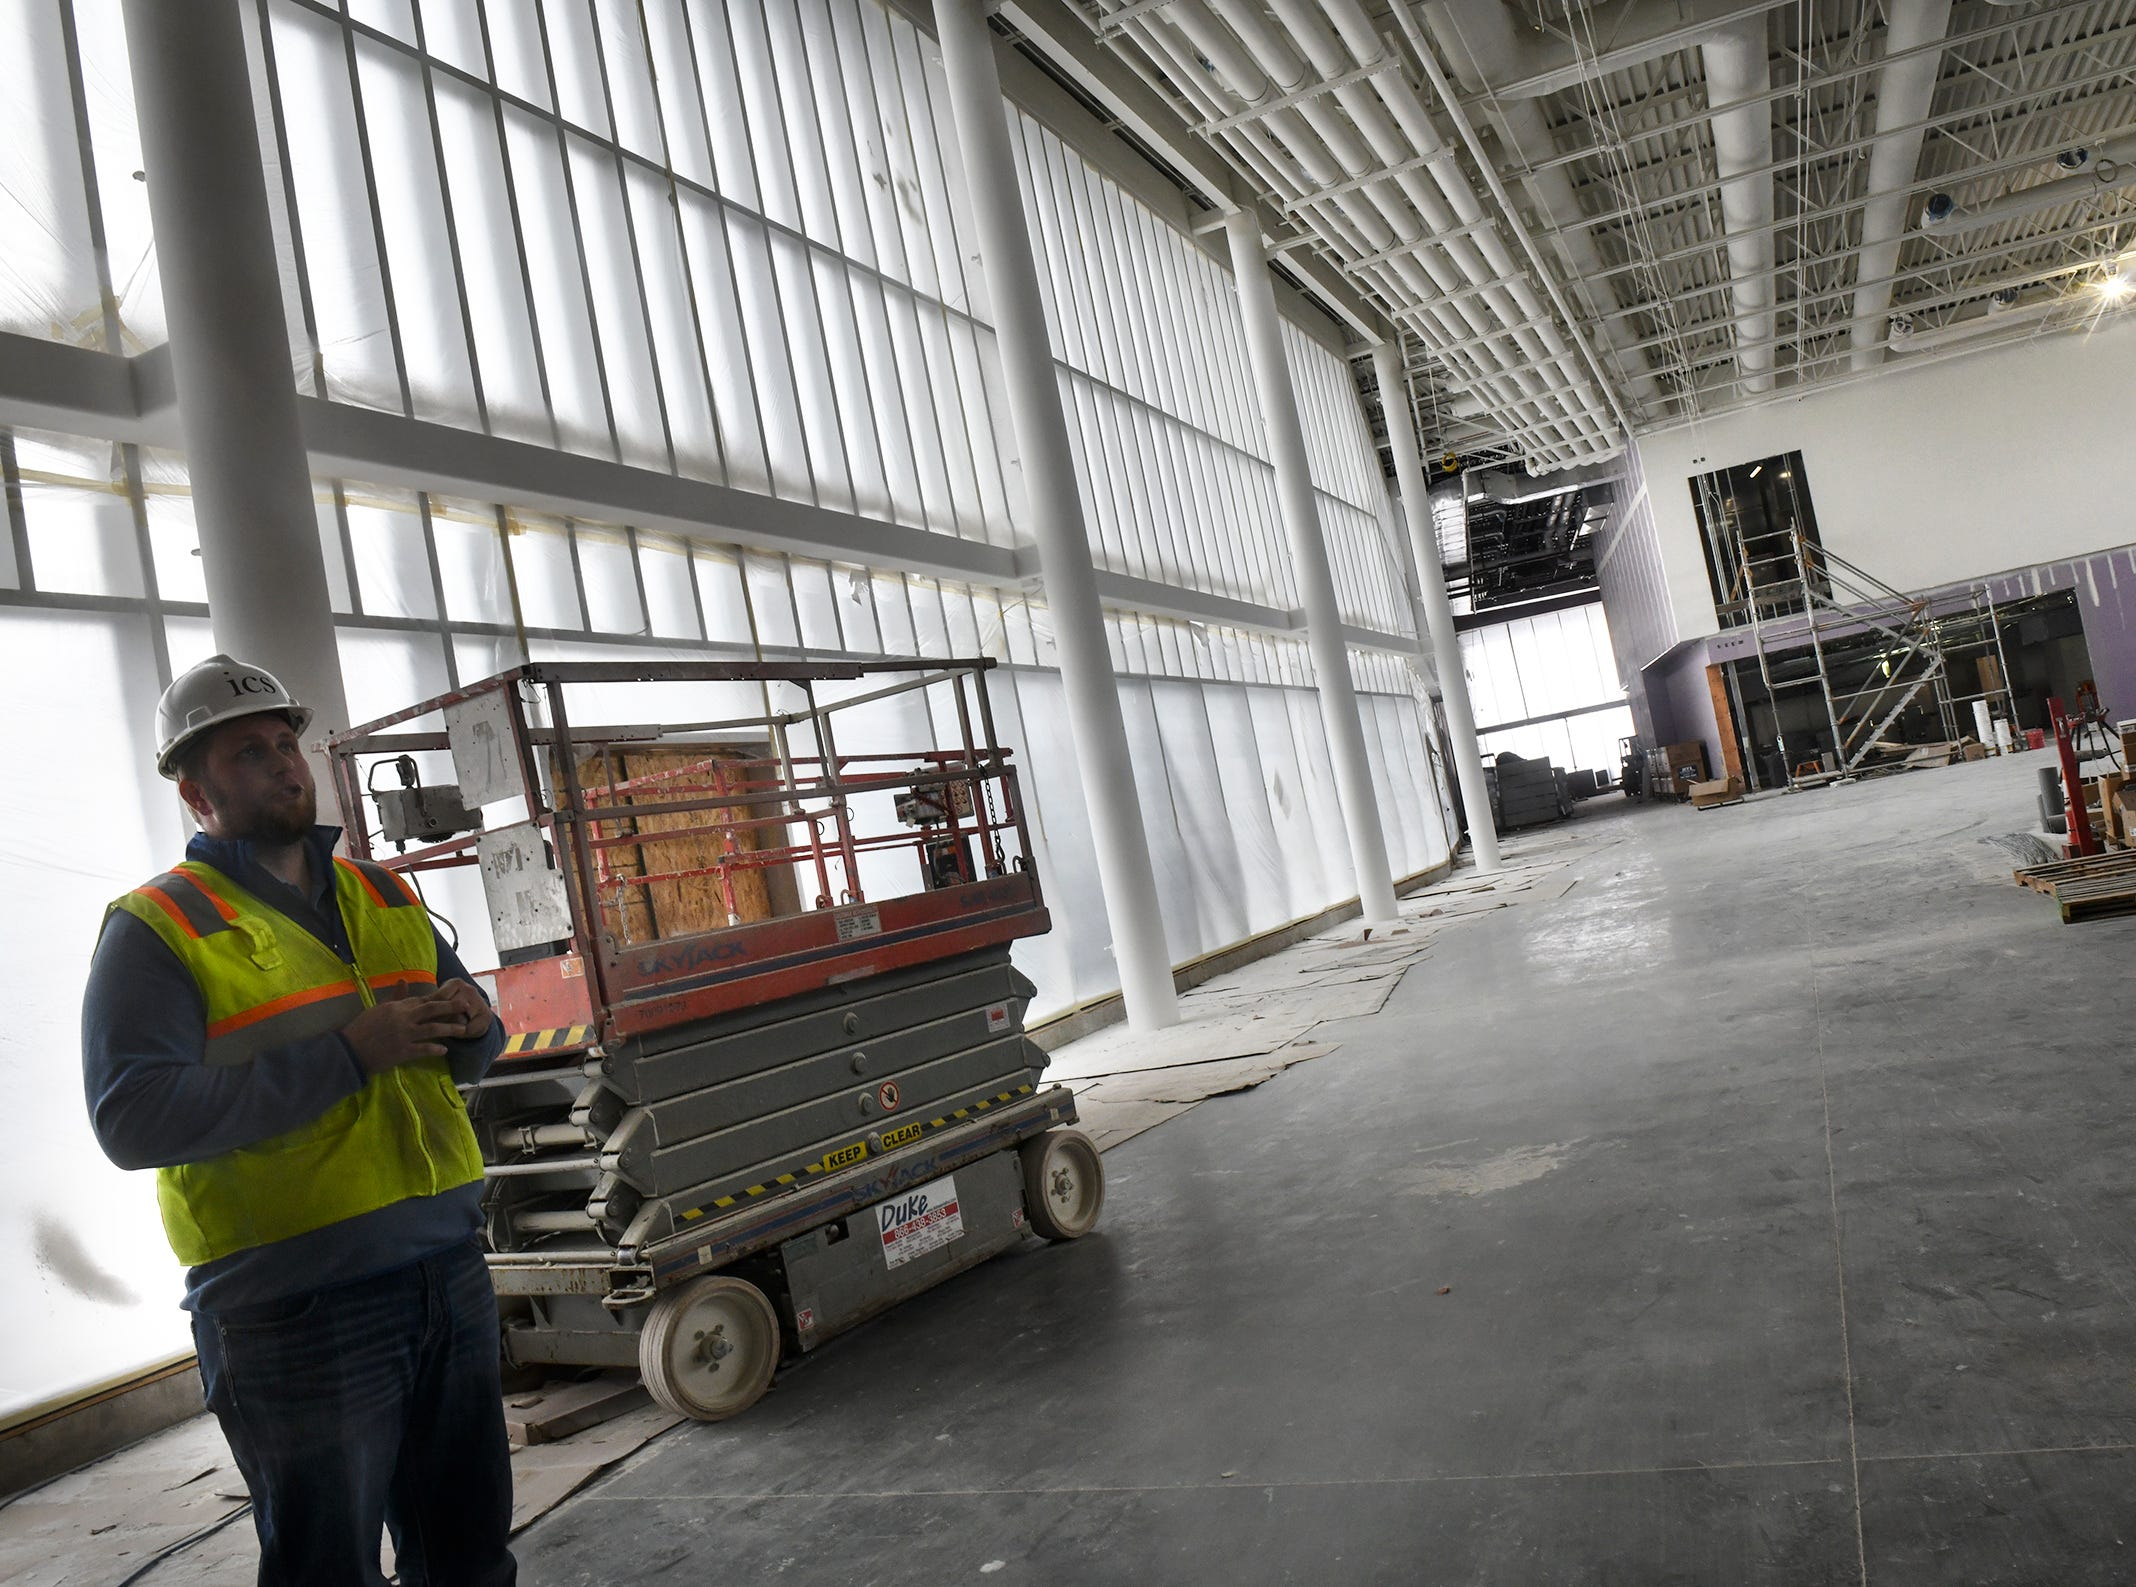 Site supervisor Kyle Walter talks about progress in construction during a tour of the new Tech High School building Friday, March 15, in St. Cloud.